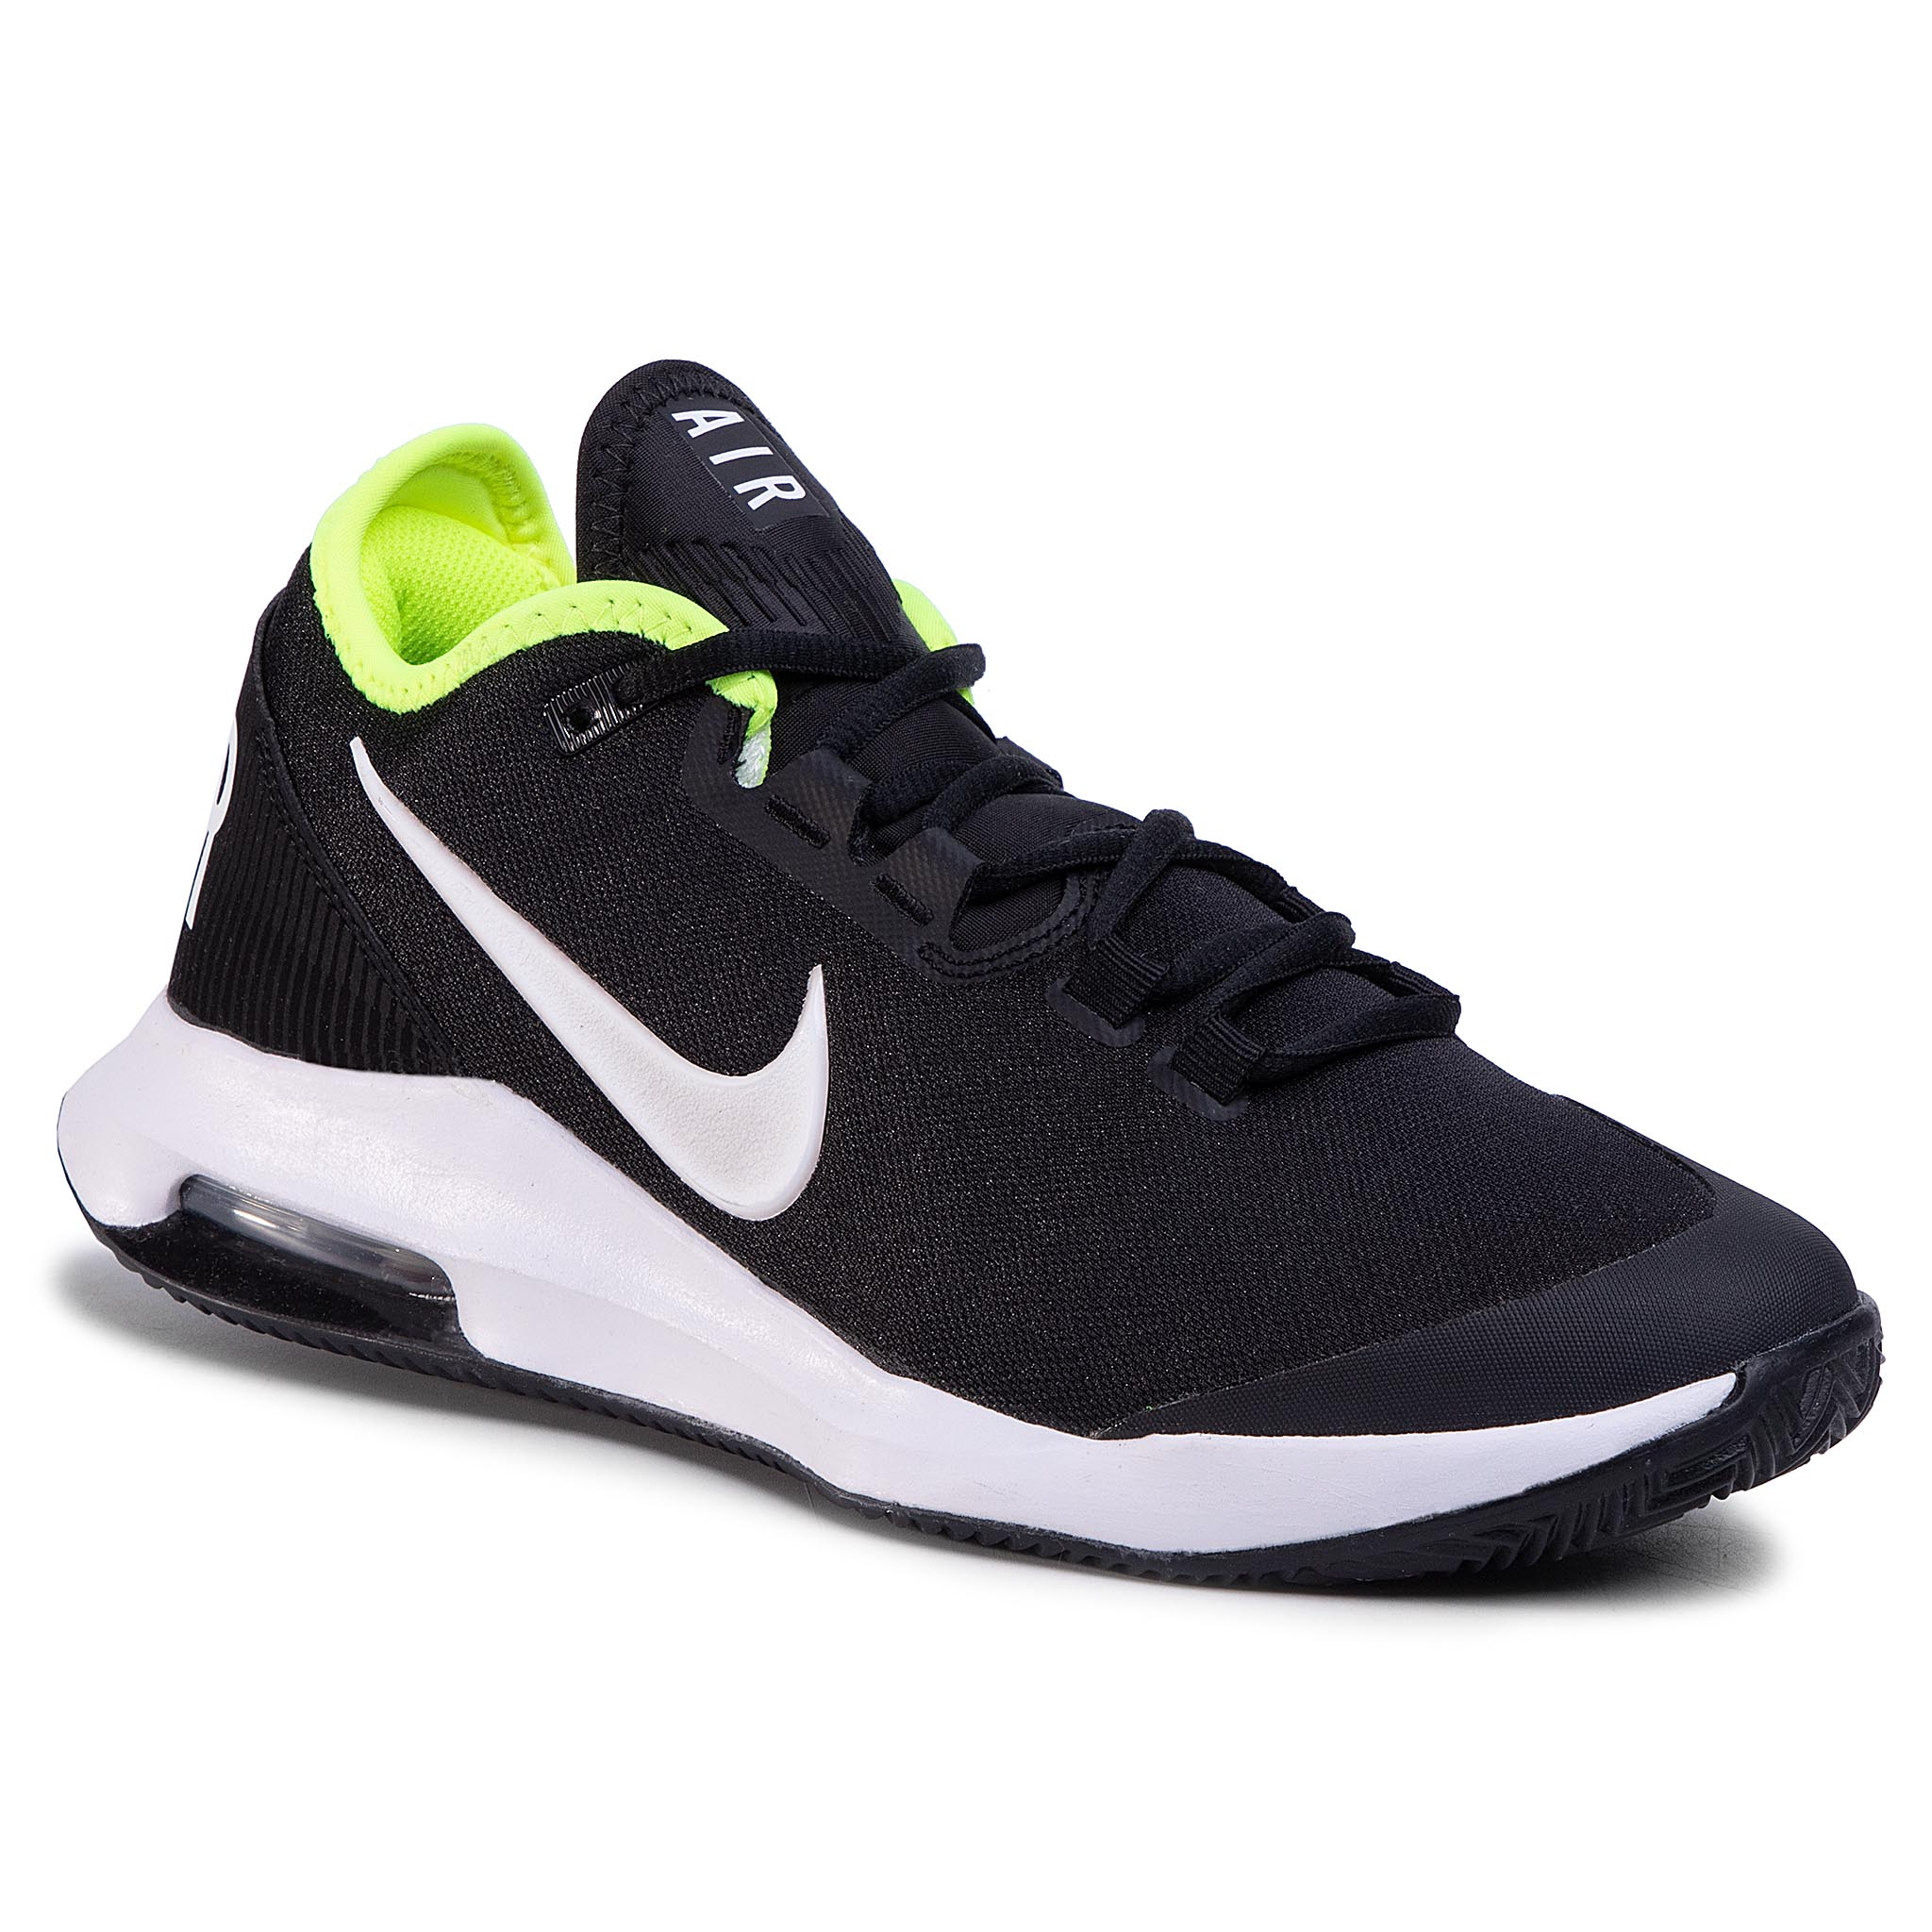 Pantofi Nike - Air Max Wildcard Cly Ao7350 007 Black/White/Volt imagine epantofi.ro 2021